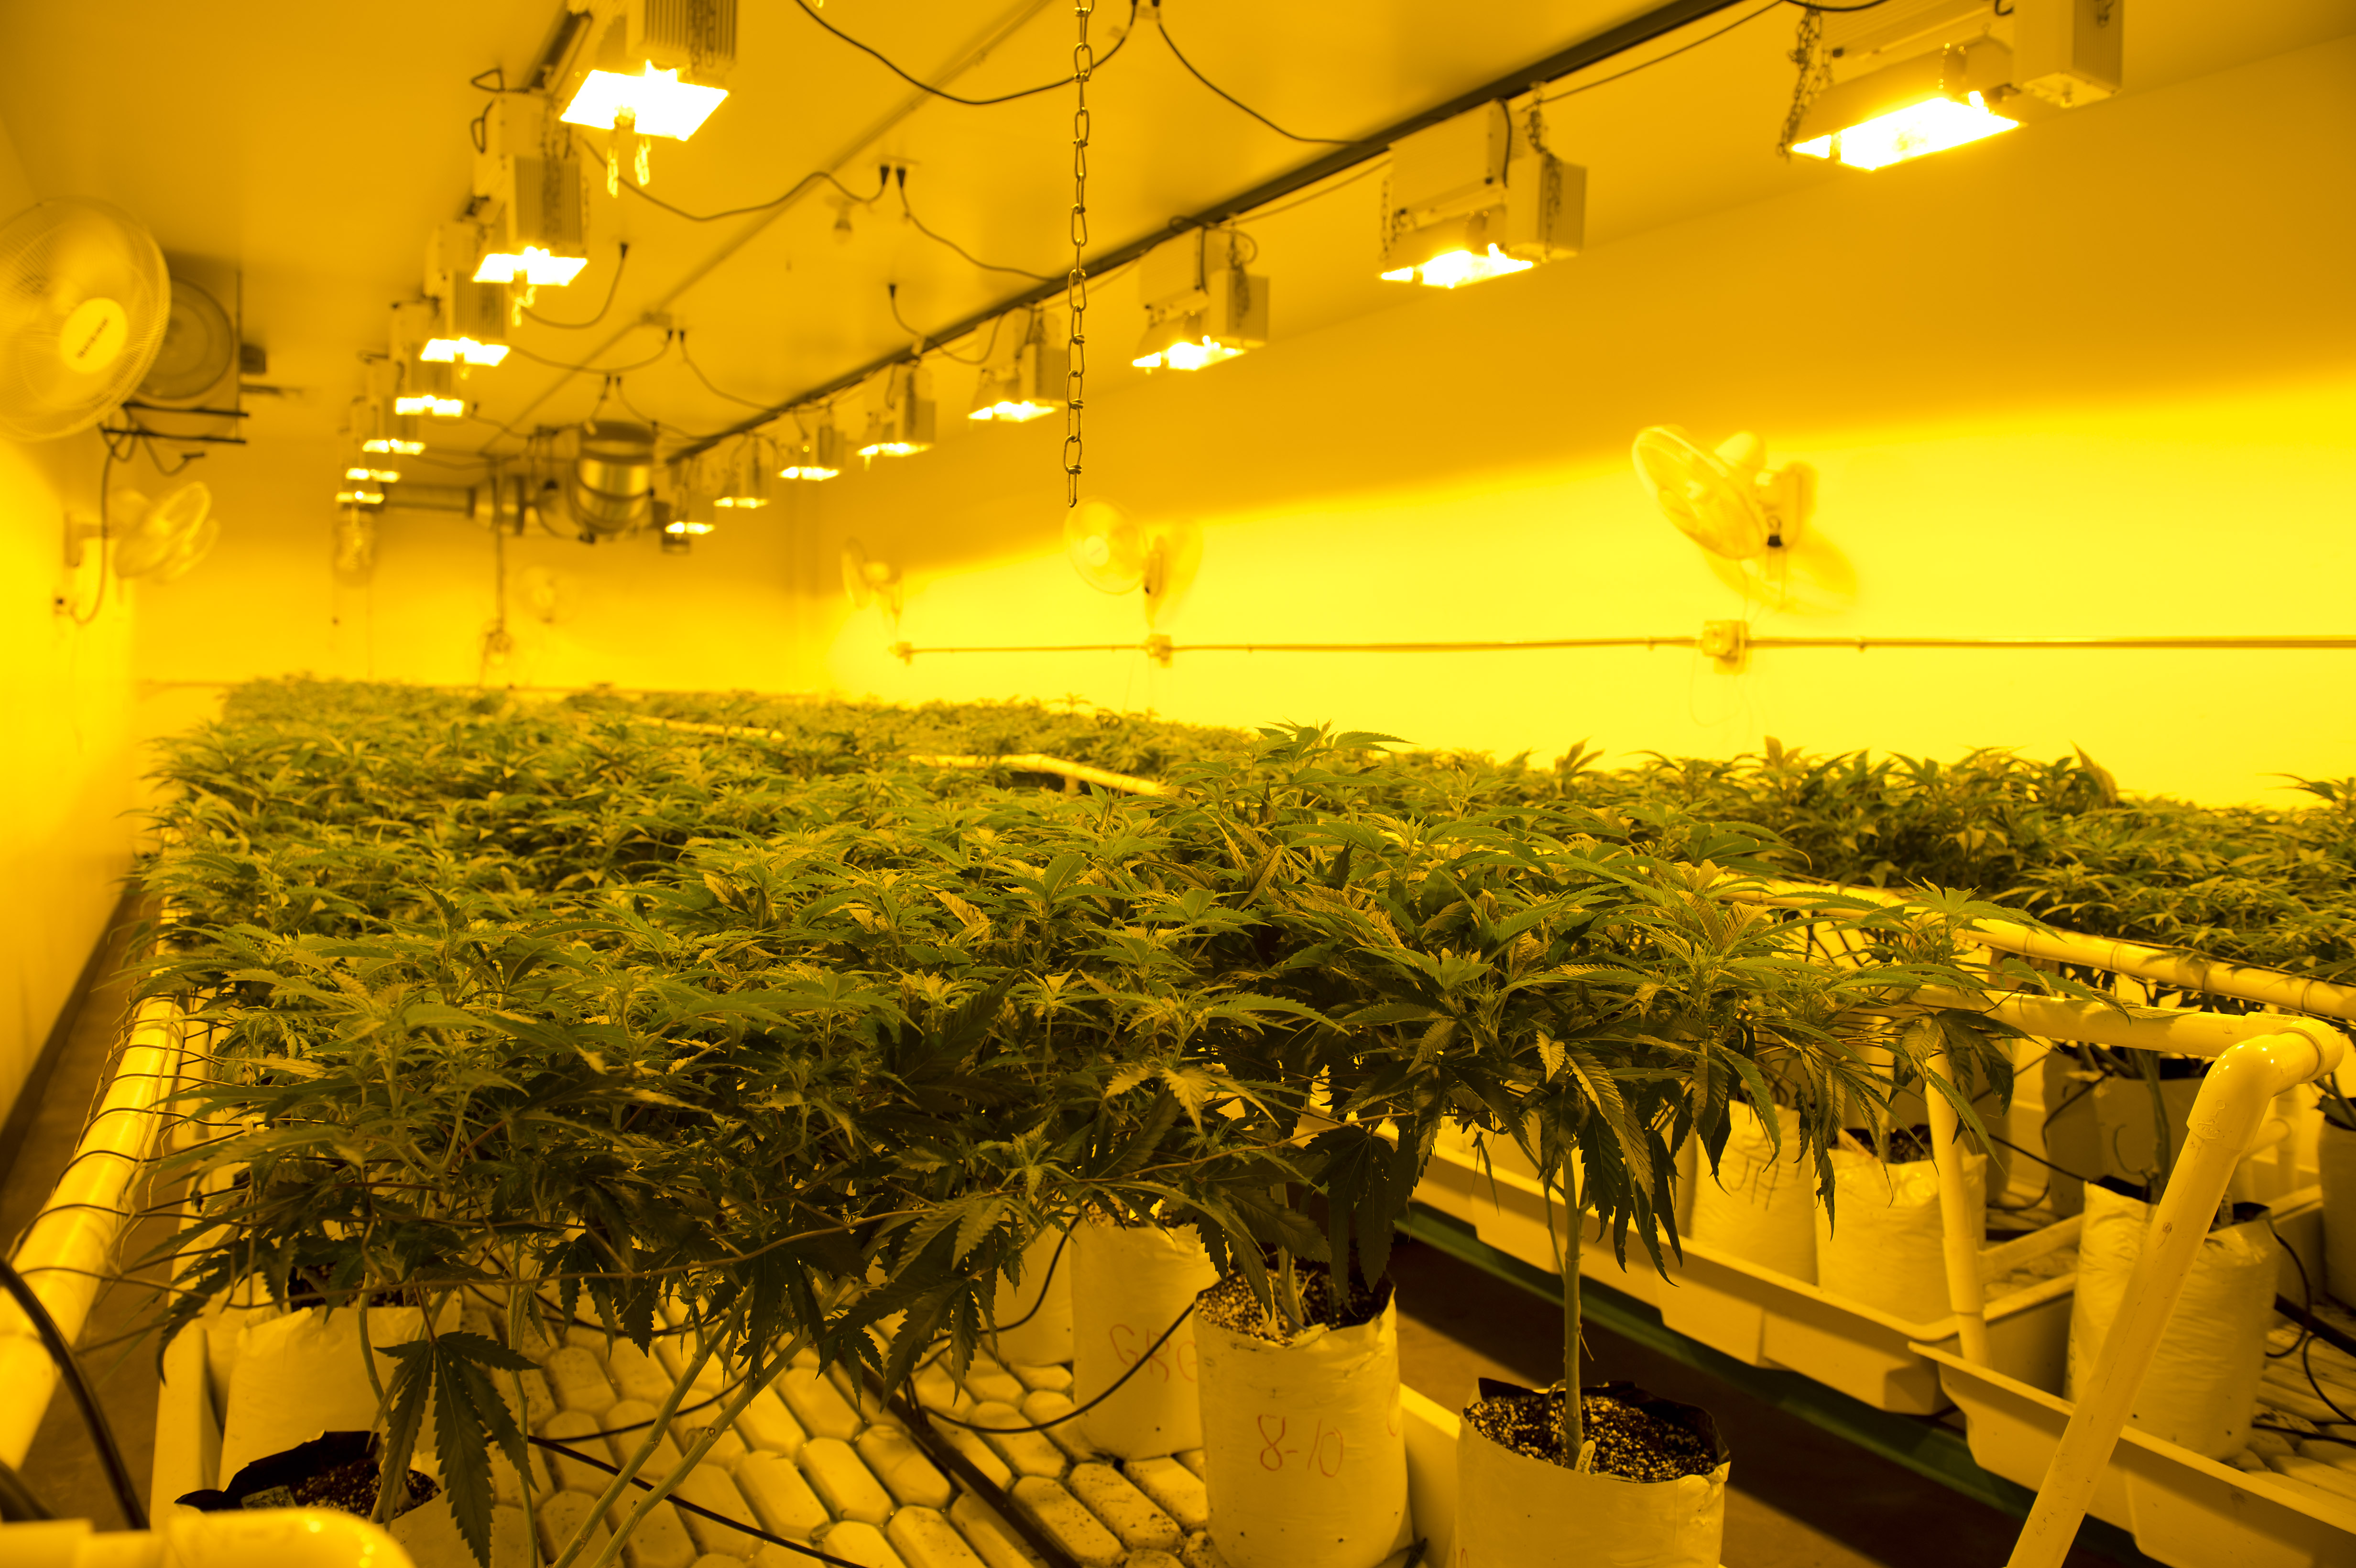 The yellow light of high-pressure sodium lamps mimics autumn light and helps in the cannabis-growing process inside Colorado Harvest Company's 10,000-square-foot facility in south Denver, photographed Sept. 16, 2016. Photo by Andy Colwell for Billy Penn